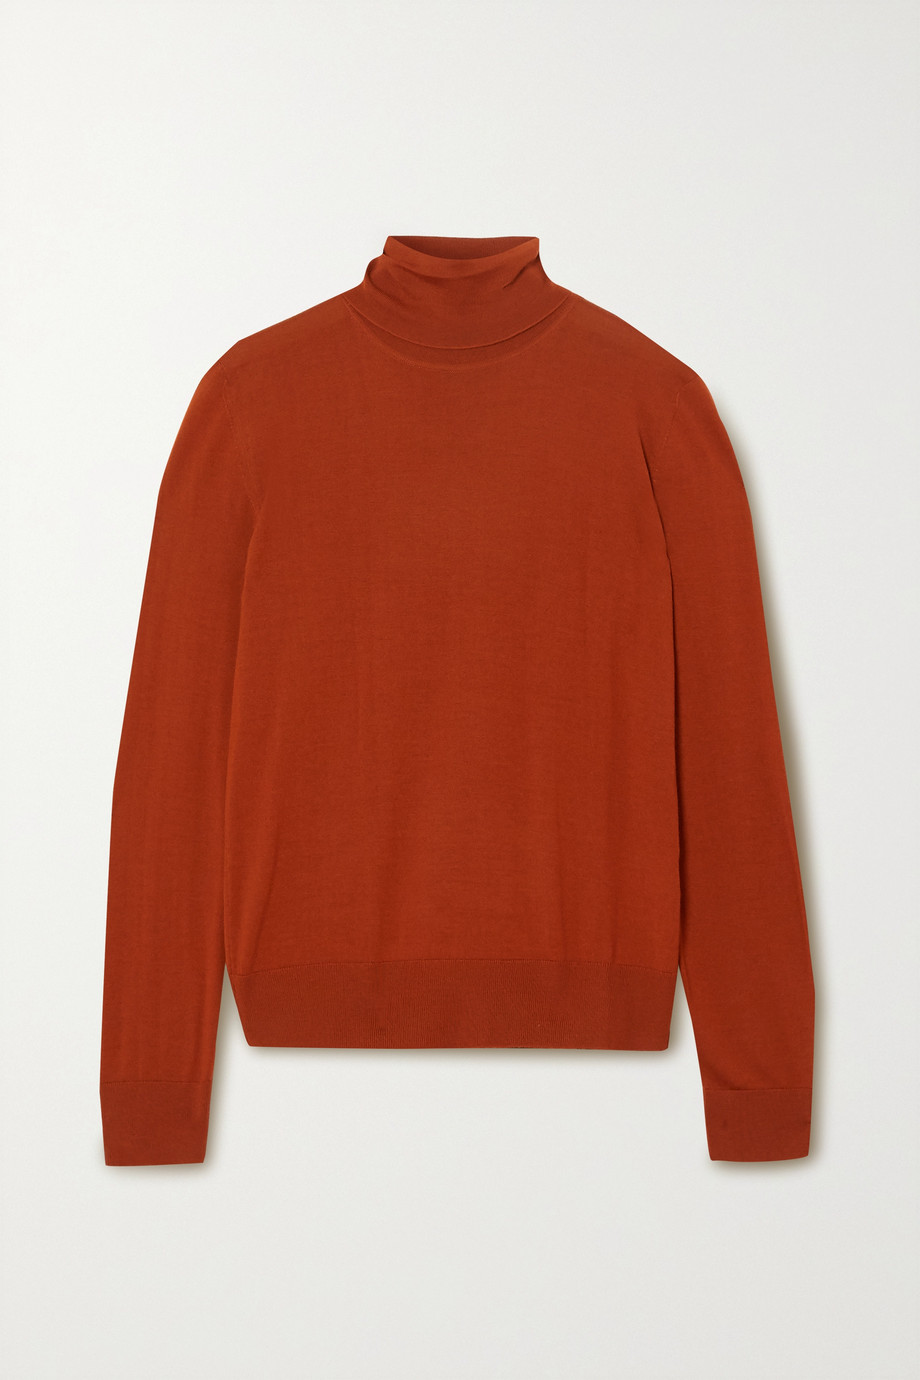 Dolce & Gabbana Wool turtleneck sweater